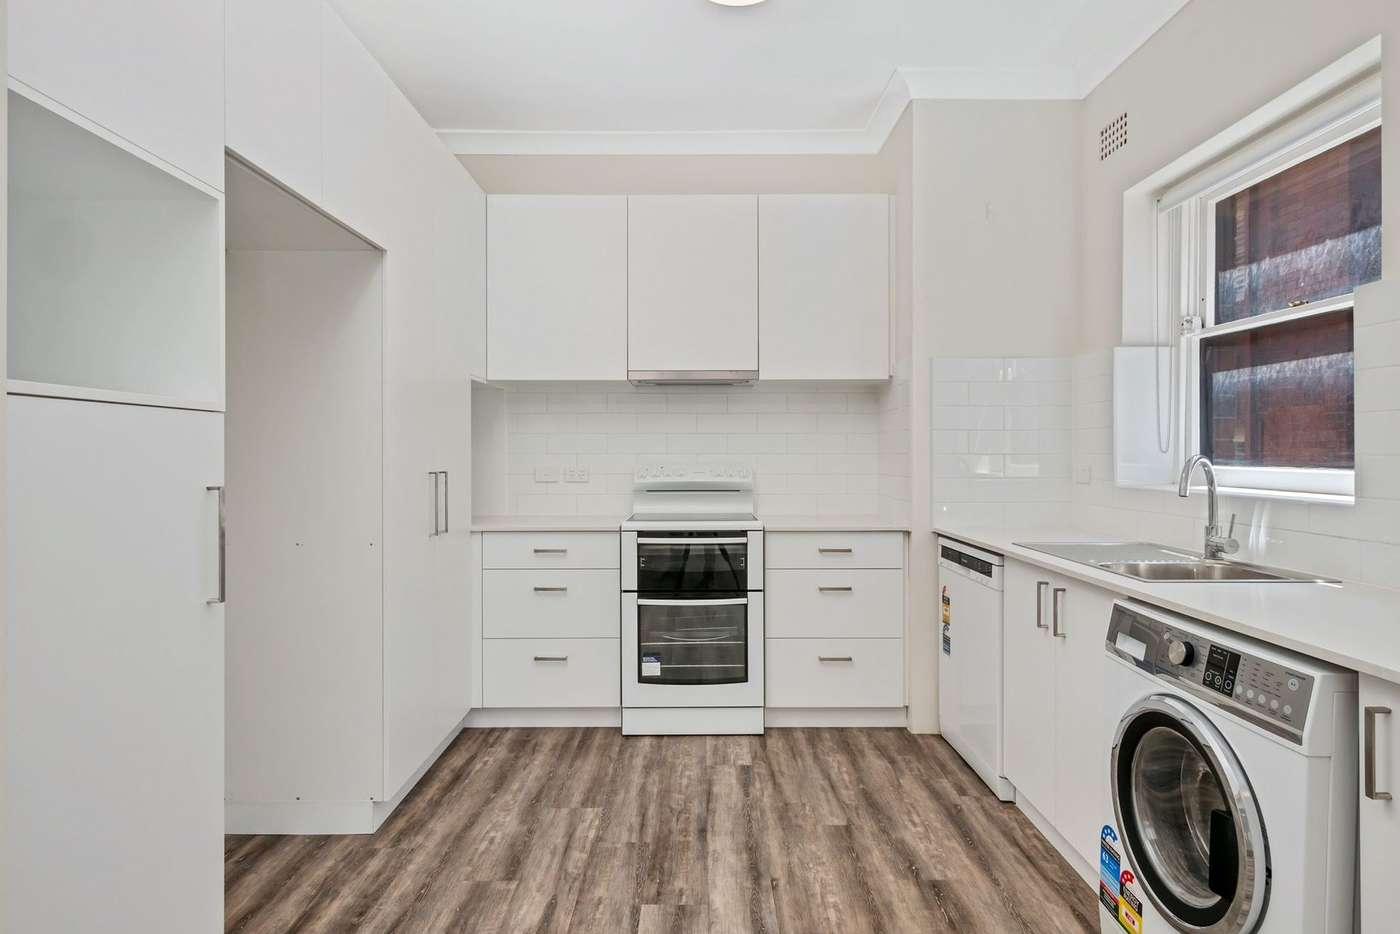 Main view of Homely apartment listing, 5/1 Ocean Street, Woollahra NSW 2025